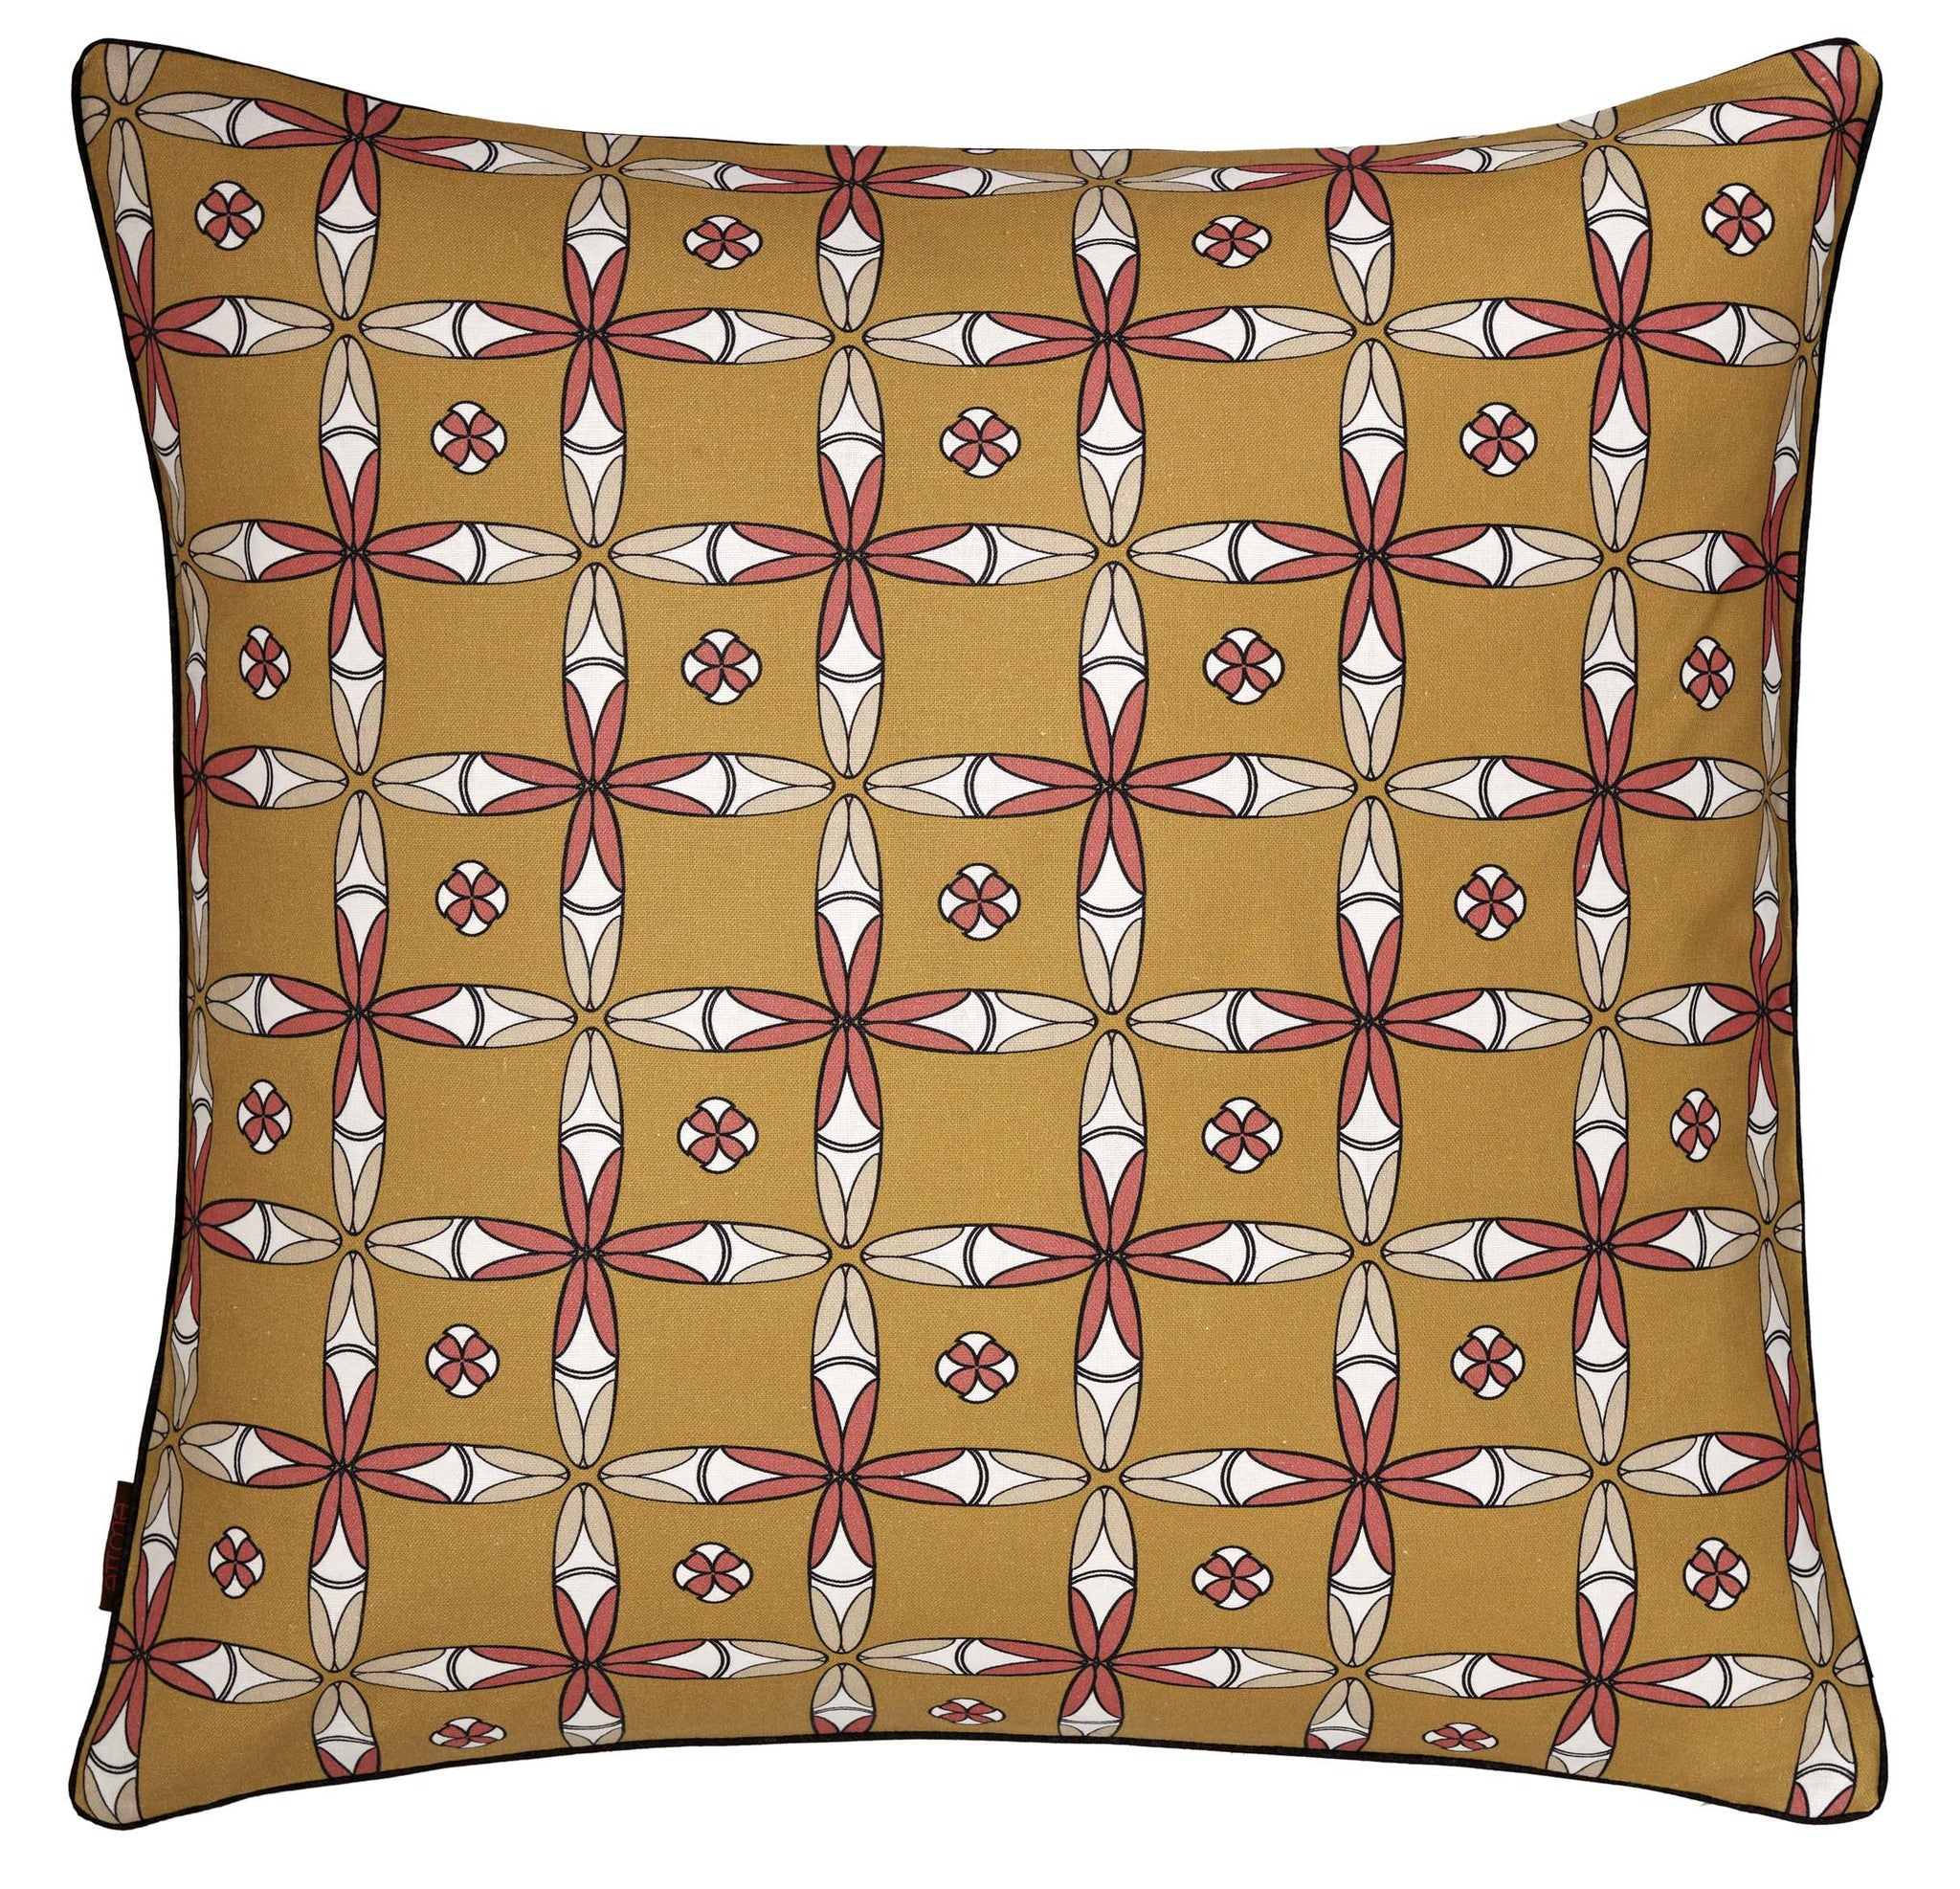 Navajo Geometric Pattern Linen Cushion in Mustard Gold 45x45cm